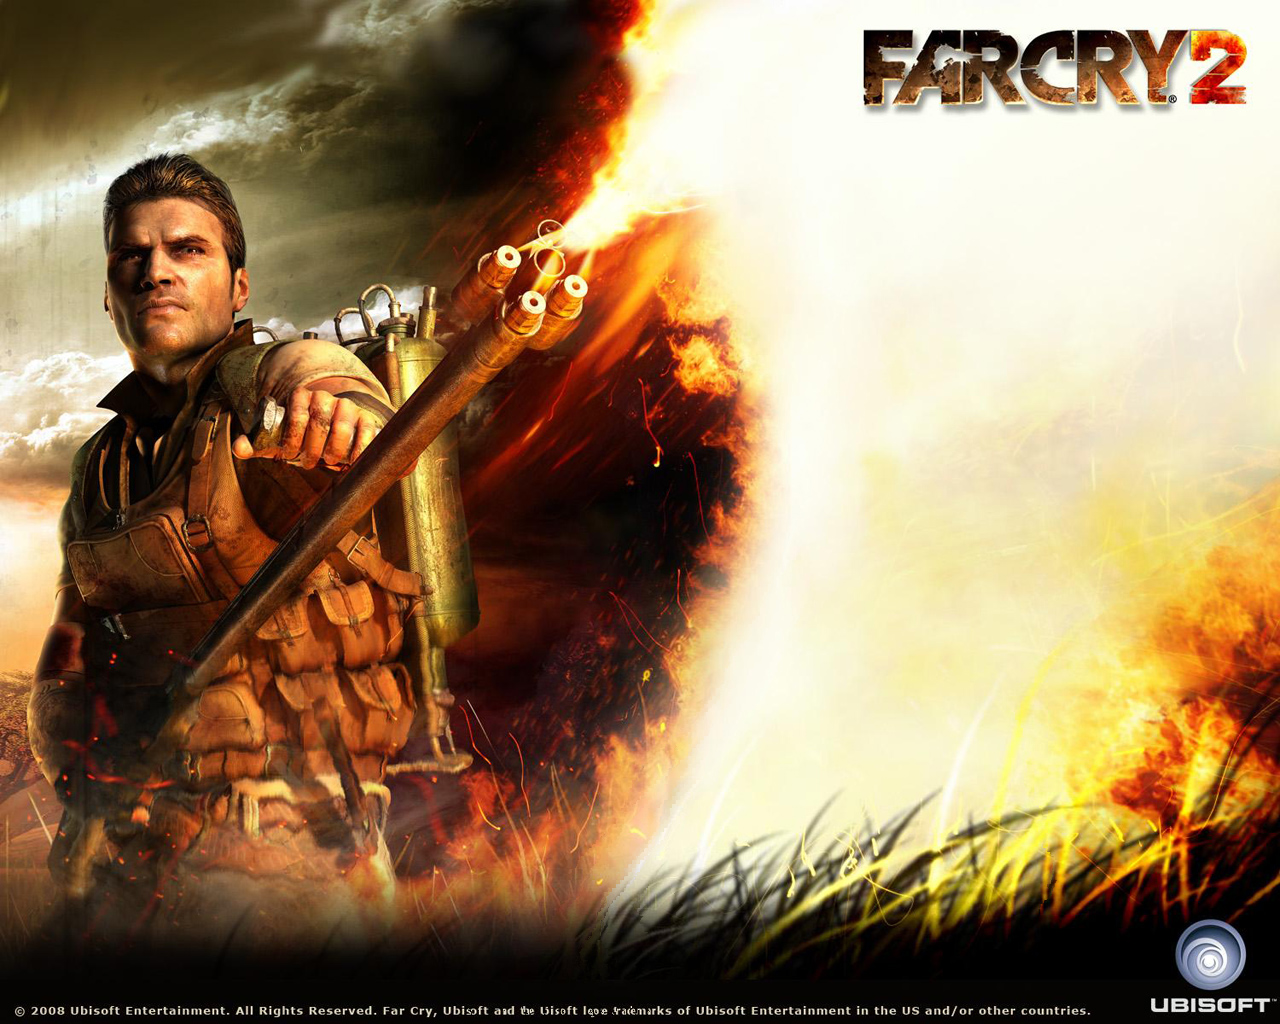 Far Cry 2 flamethrower